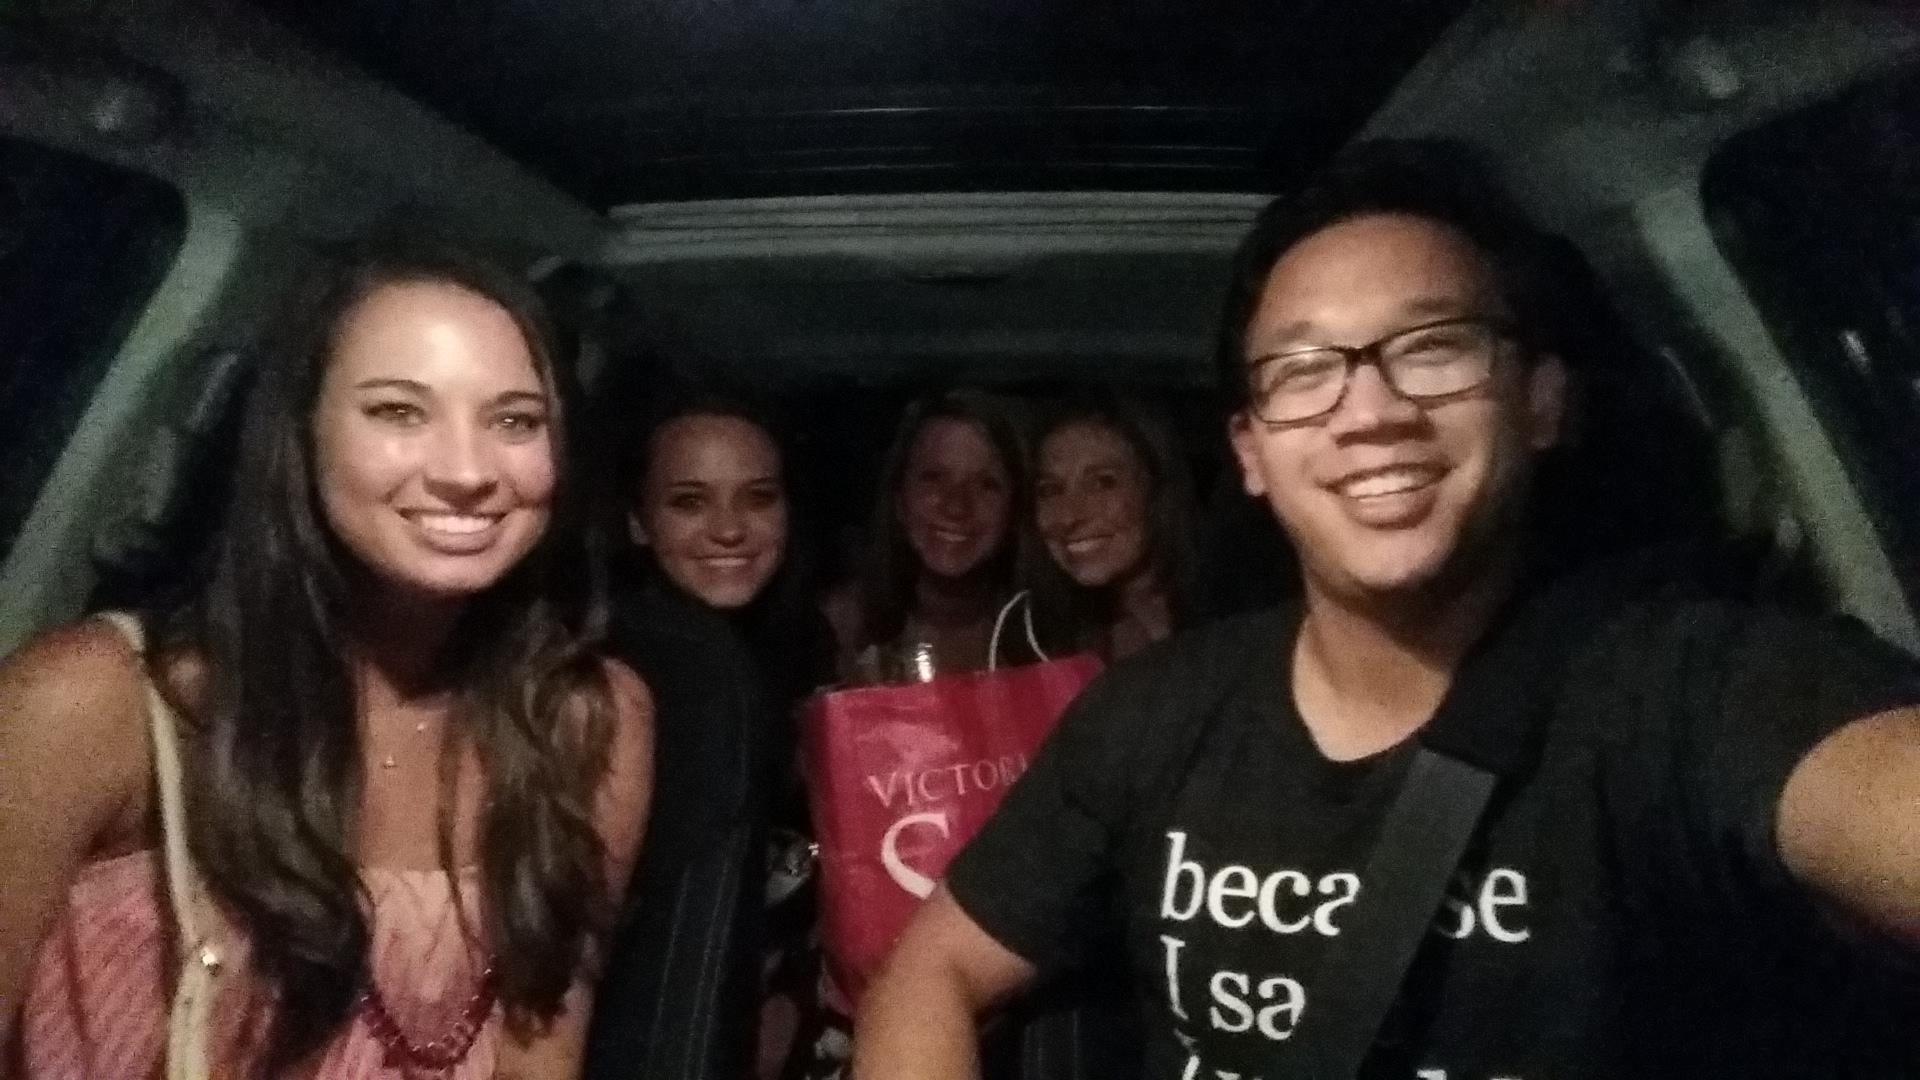 I offered to drive drunk people home for free last night. This is what happened.